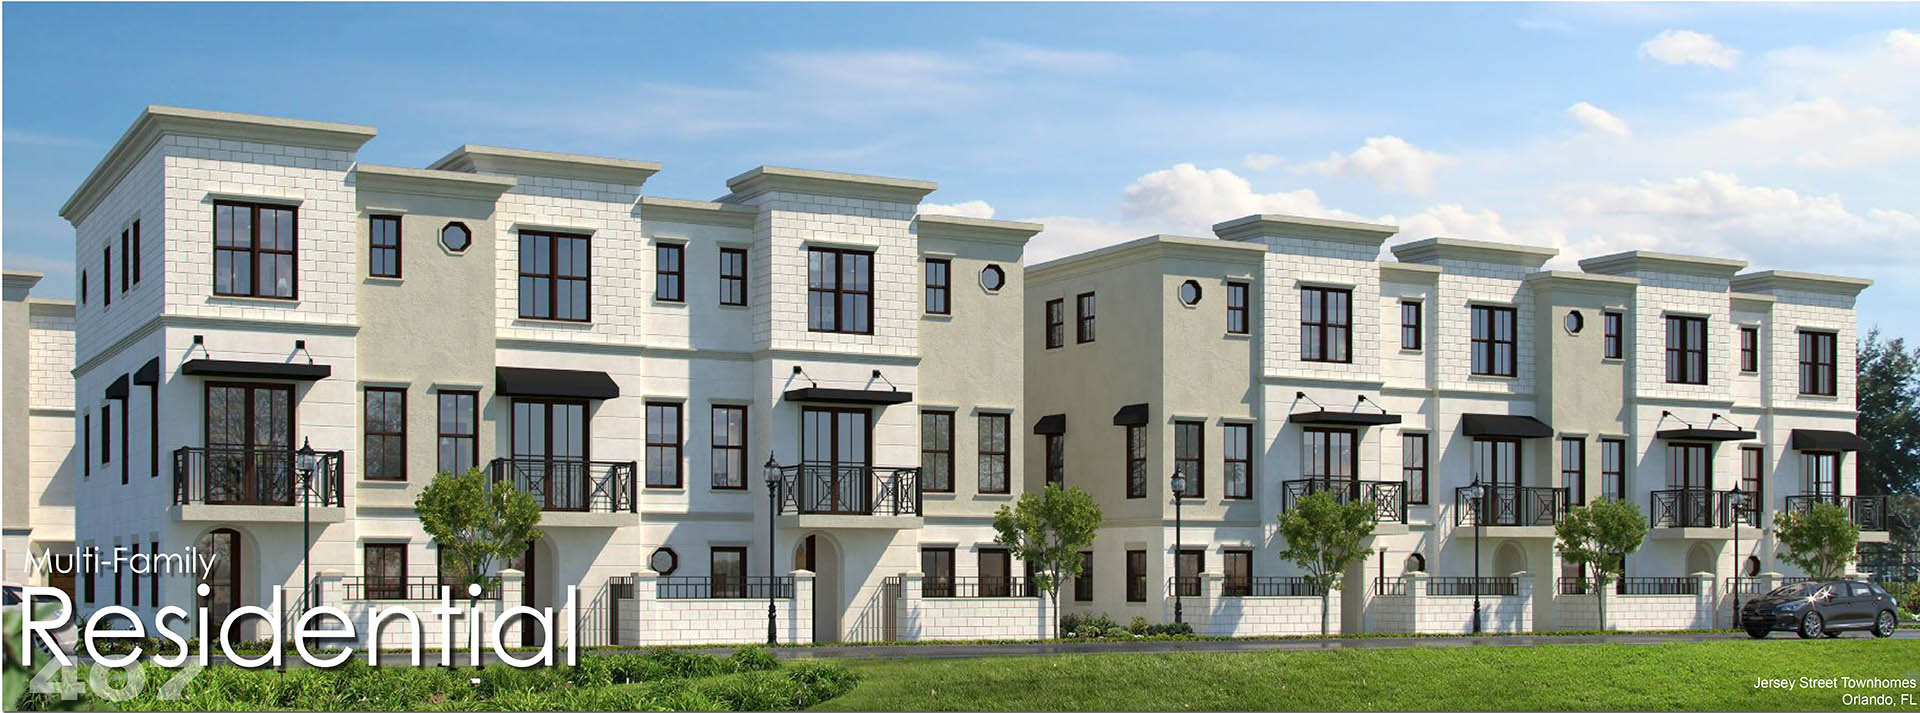 picture of a multifamily townhome complex: Jersey Street Townhomes